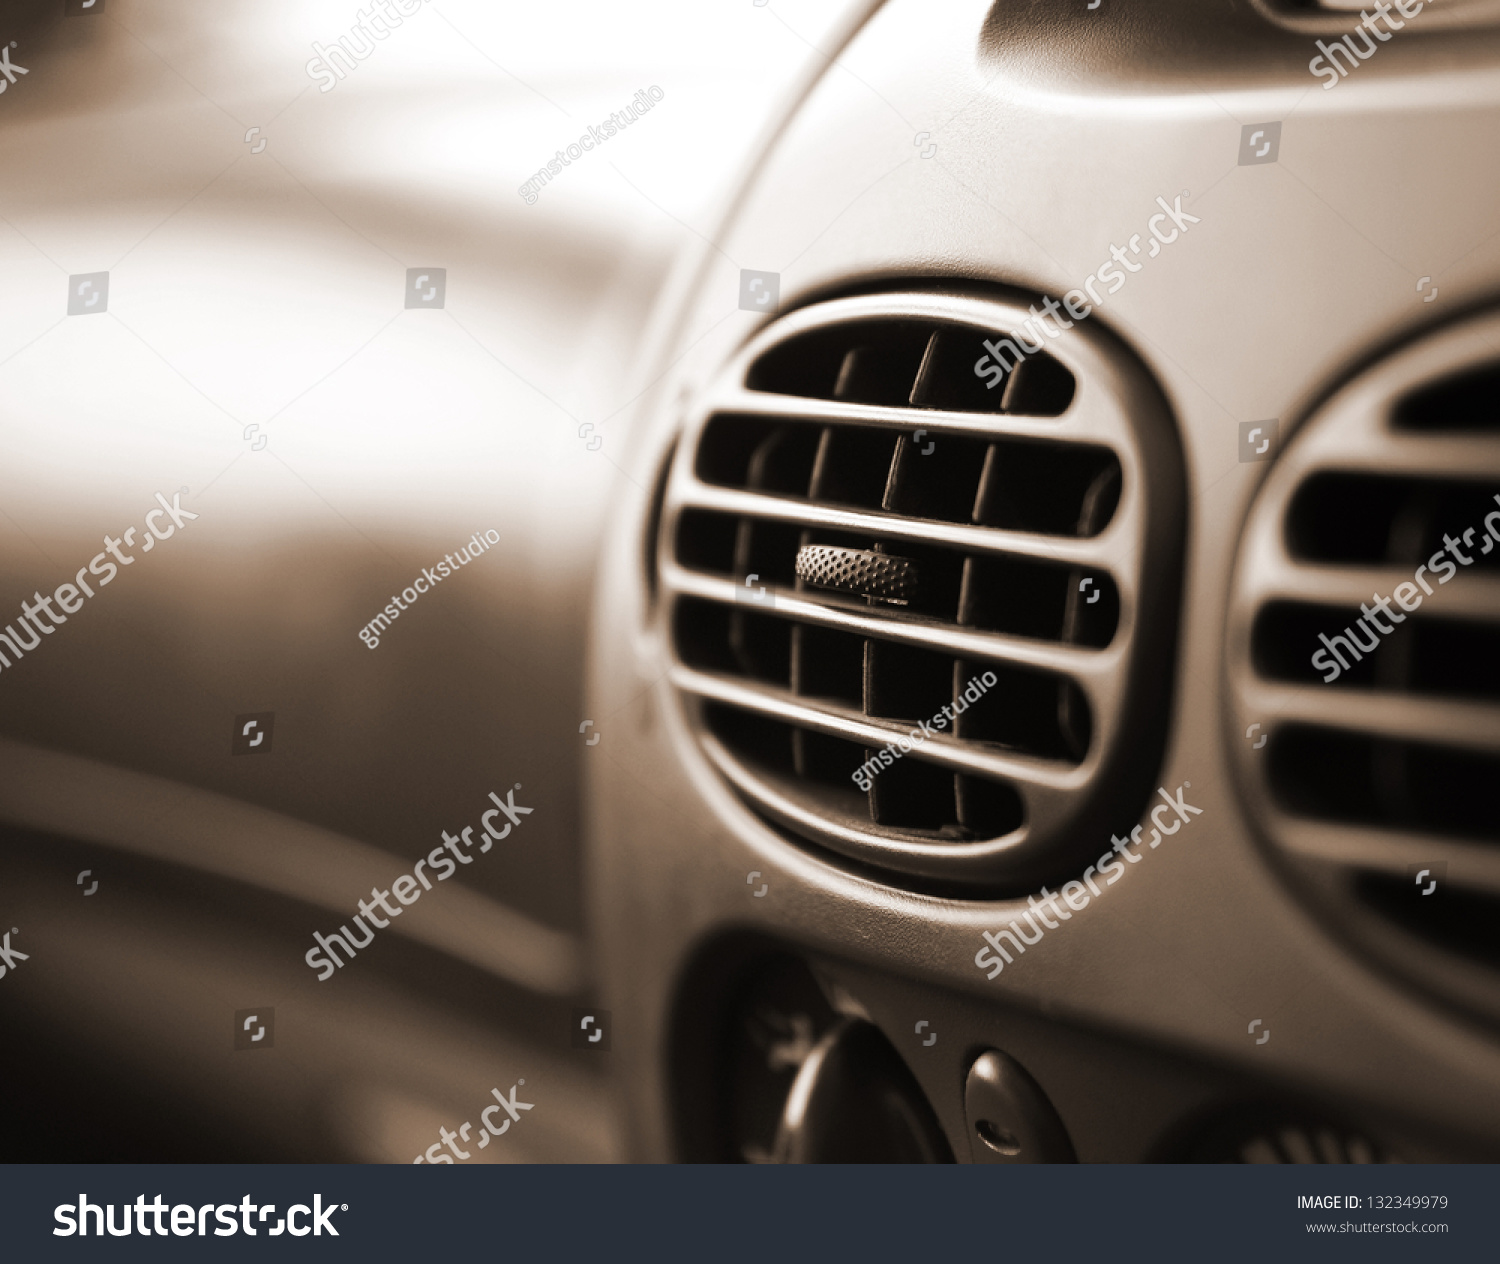 car interior air conditioner very shallow dof stock photo 132349979 shutterstock. Black Bedroom Furniture Sets. Home Design Ideas